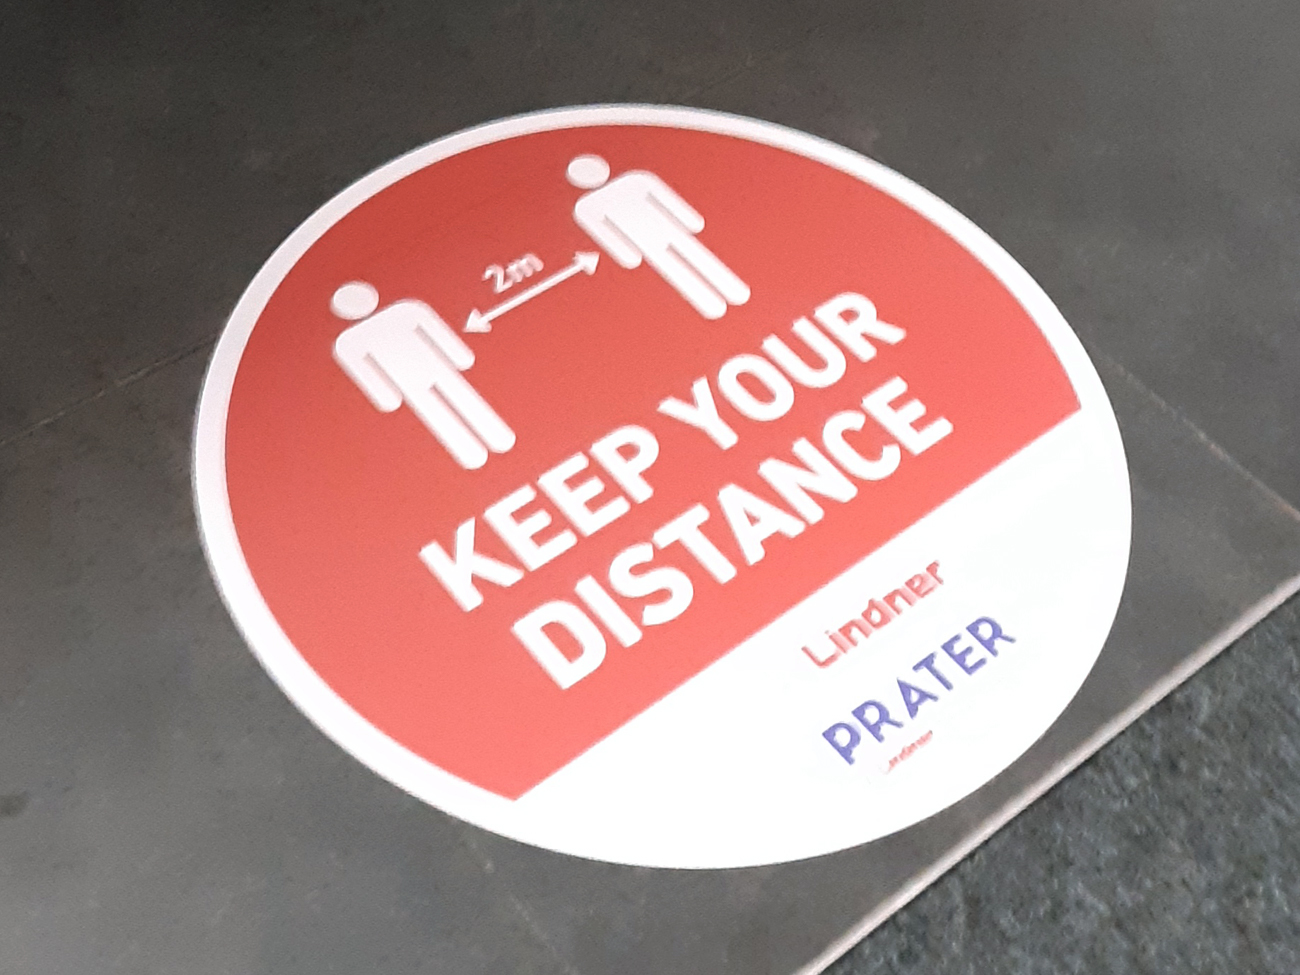 Prater keep your distance sticker